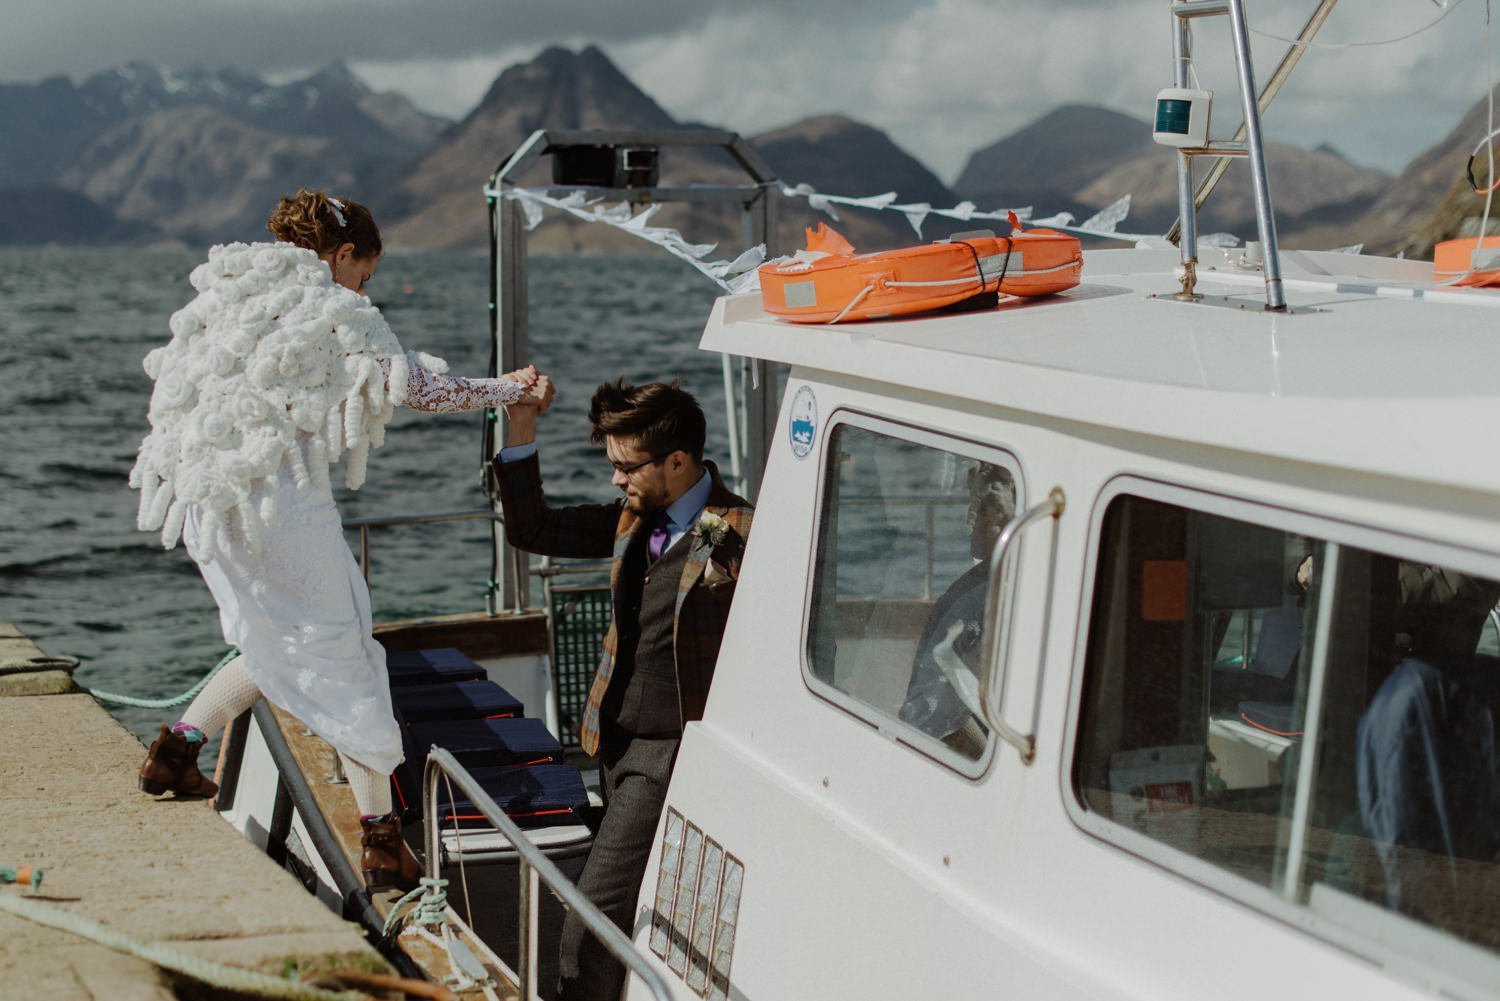 lsle of Skye elopement photographer_0392